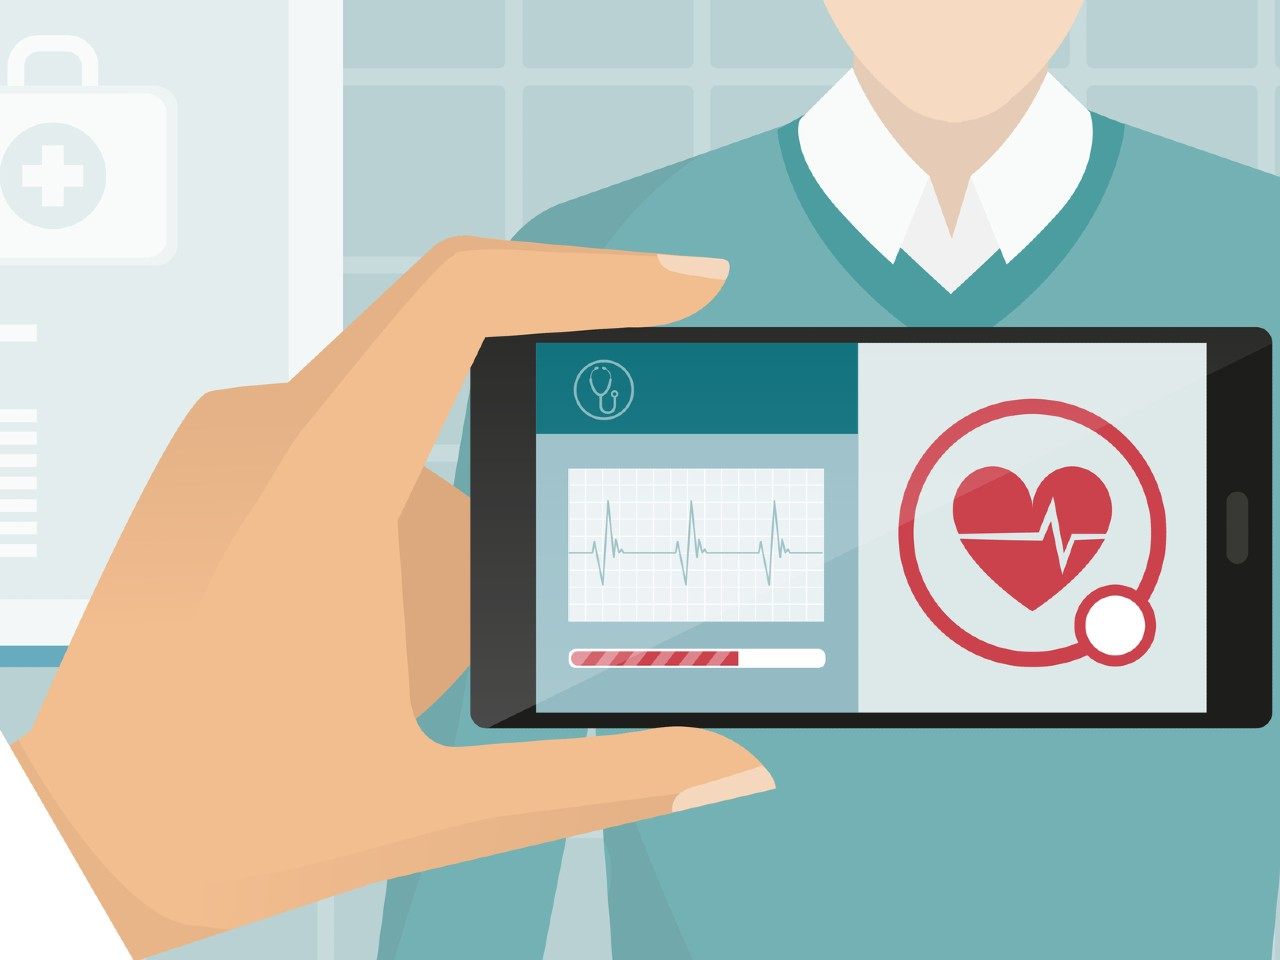 Digital transformation in healthcare & key trends to look out for